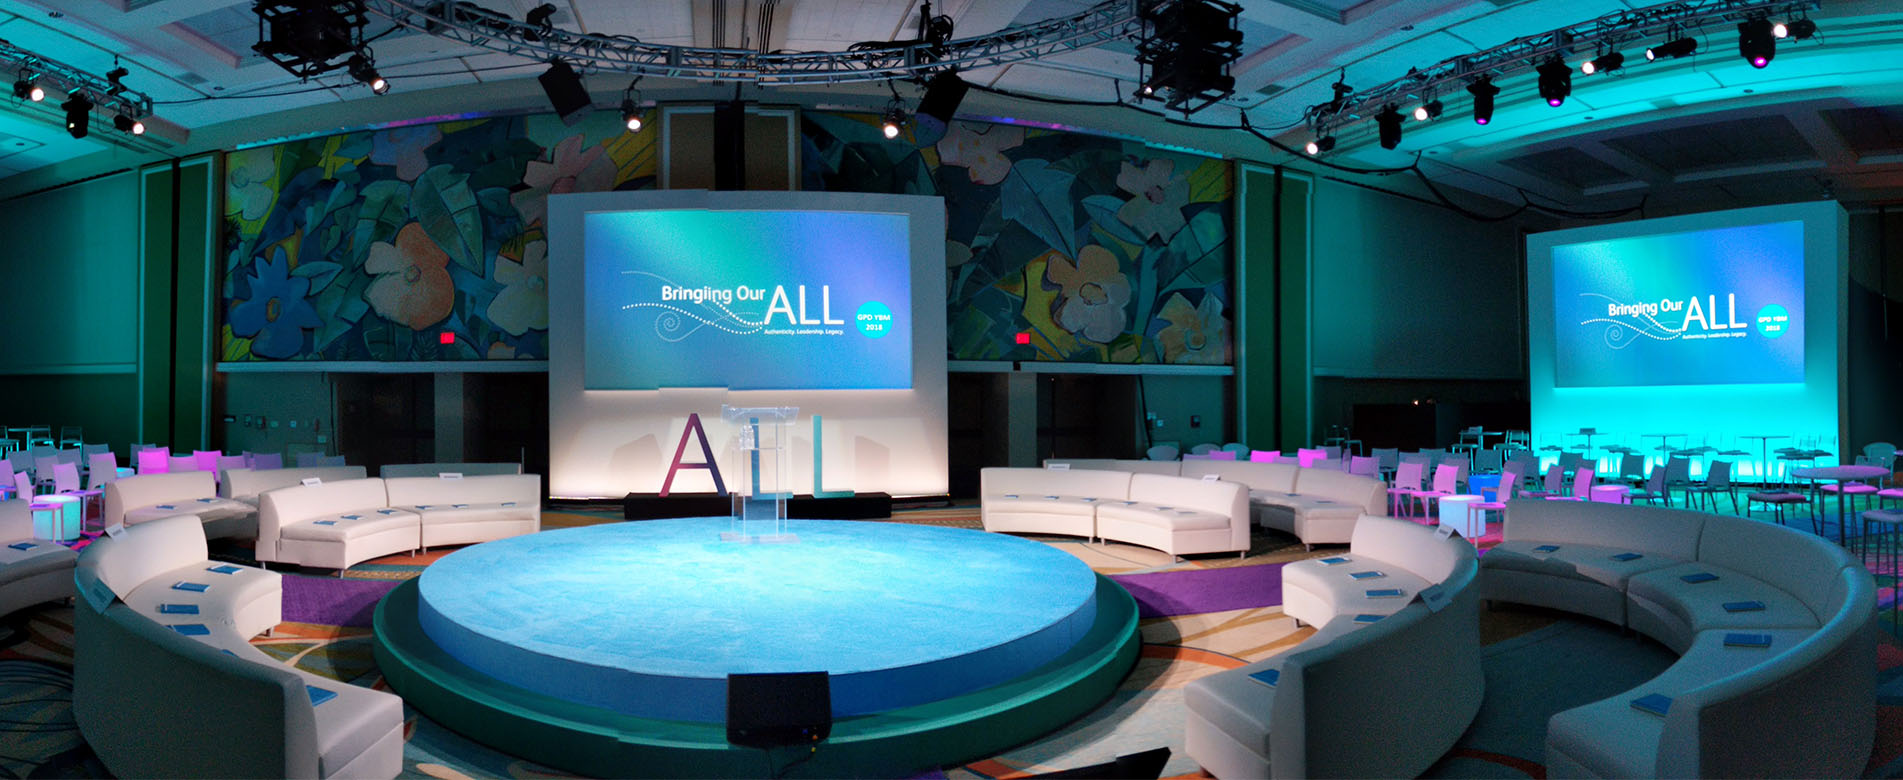 event staging and production - round stage